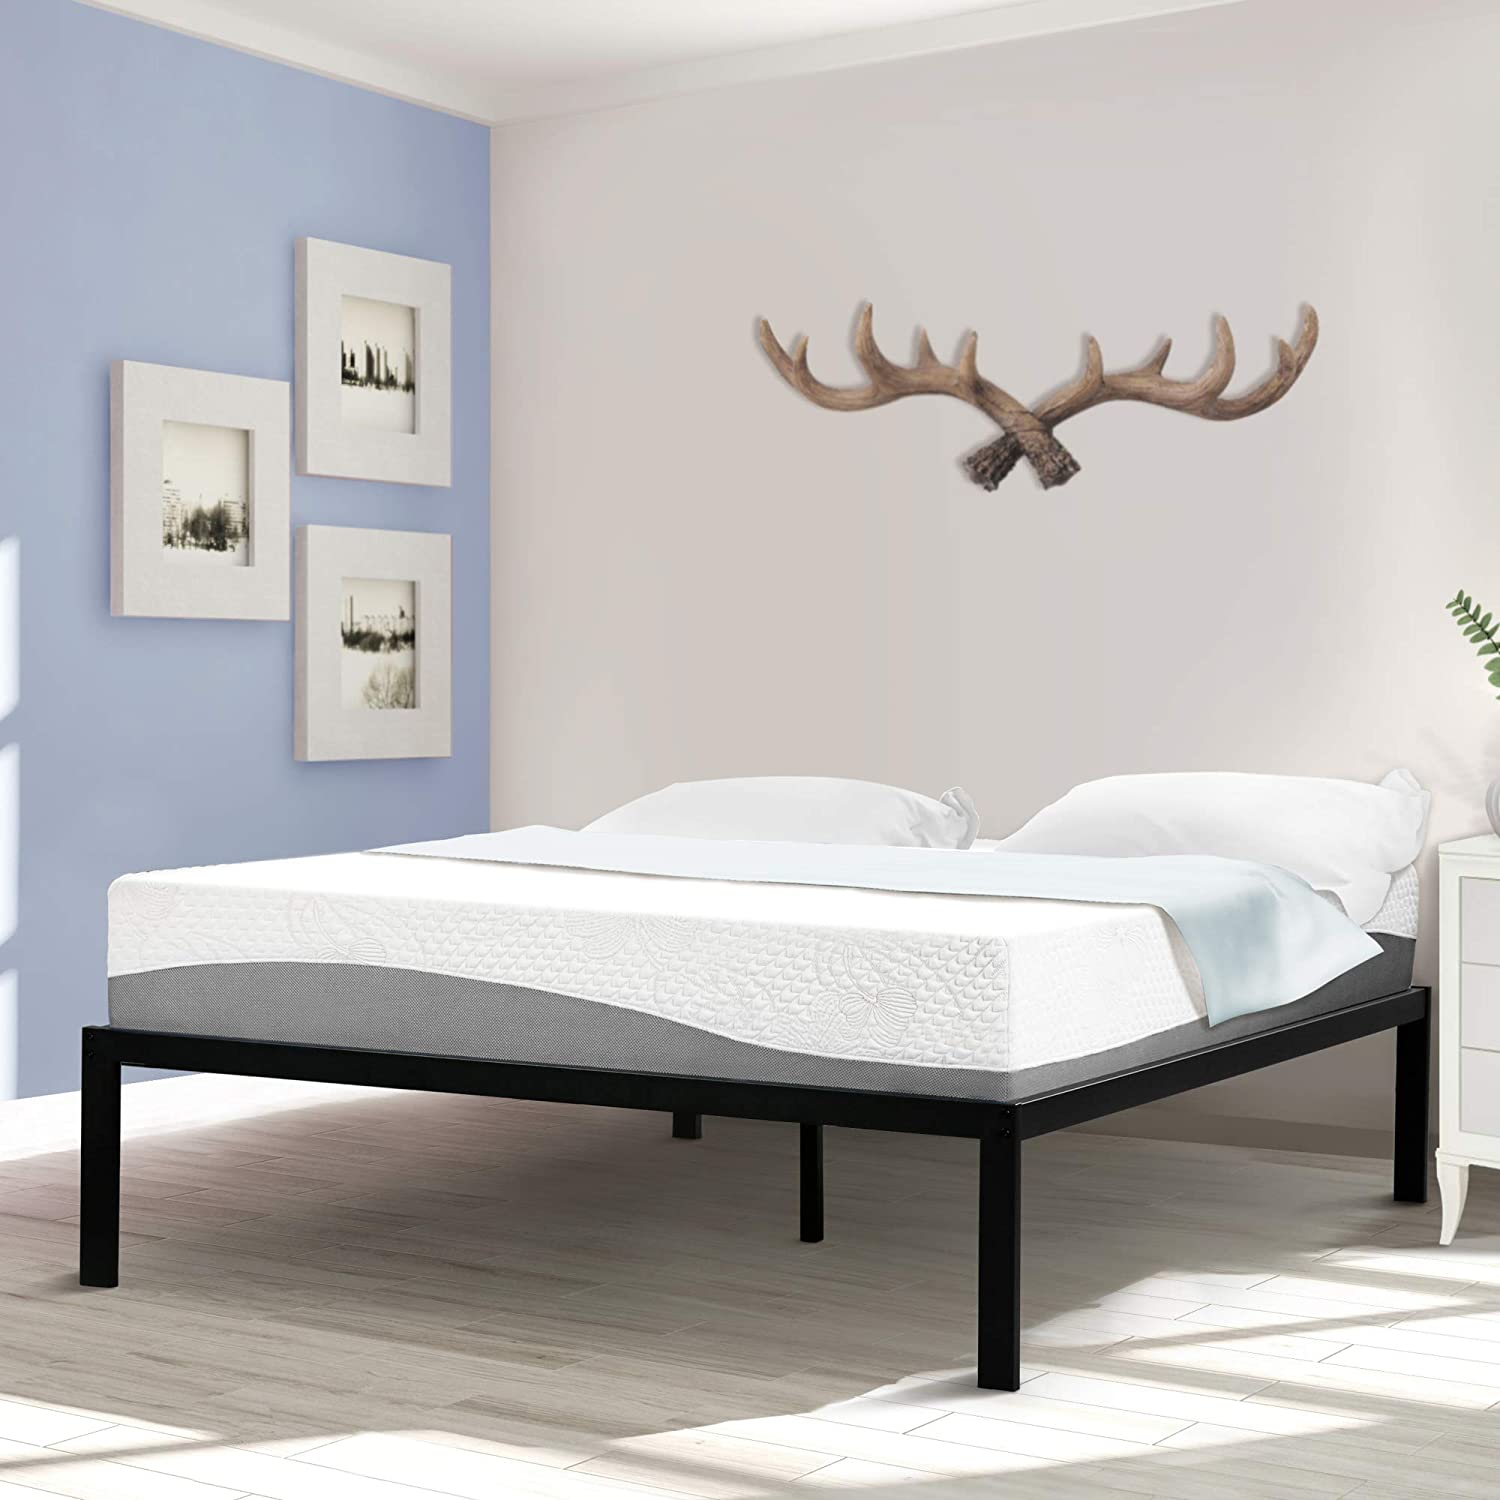 Sleeplace 16 Inch High Profile Tall Steel Slat Bed Frame Non Slip Support Ss 3000 King 16 Inch Tall